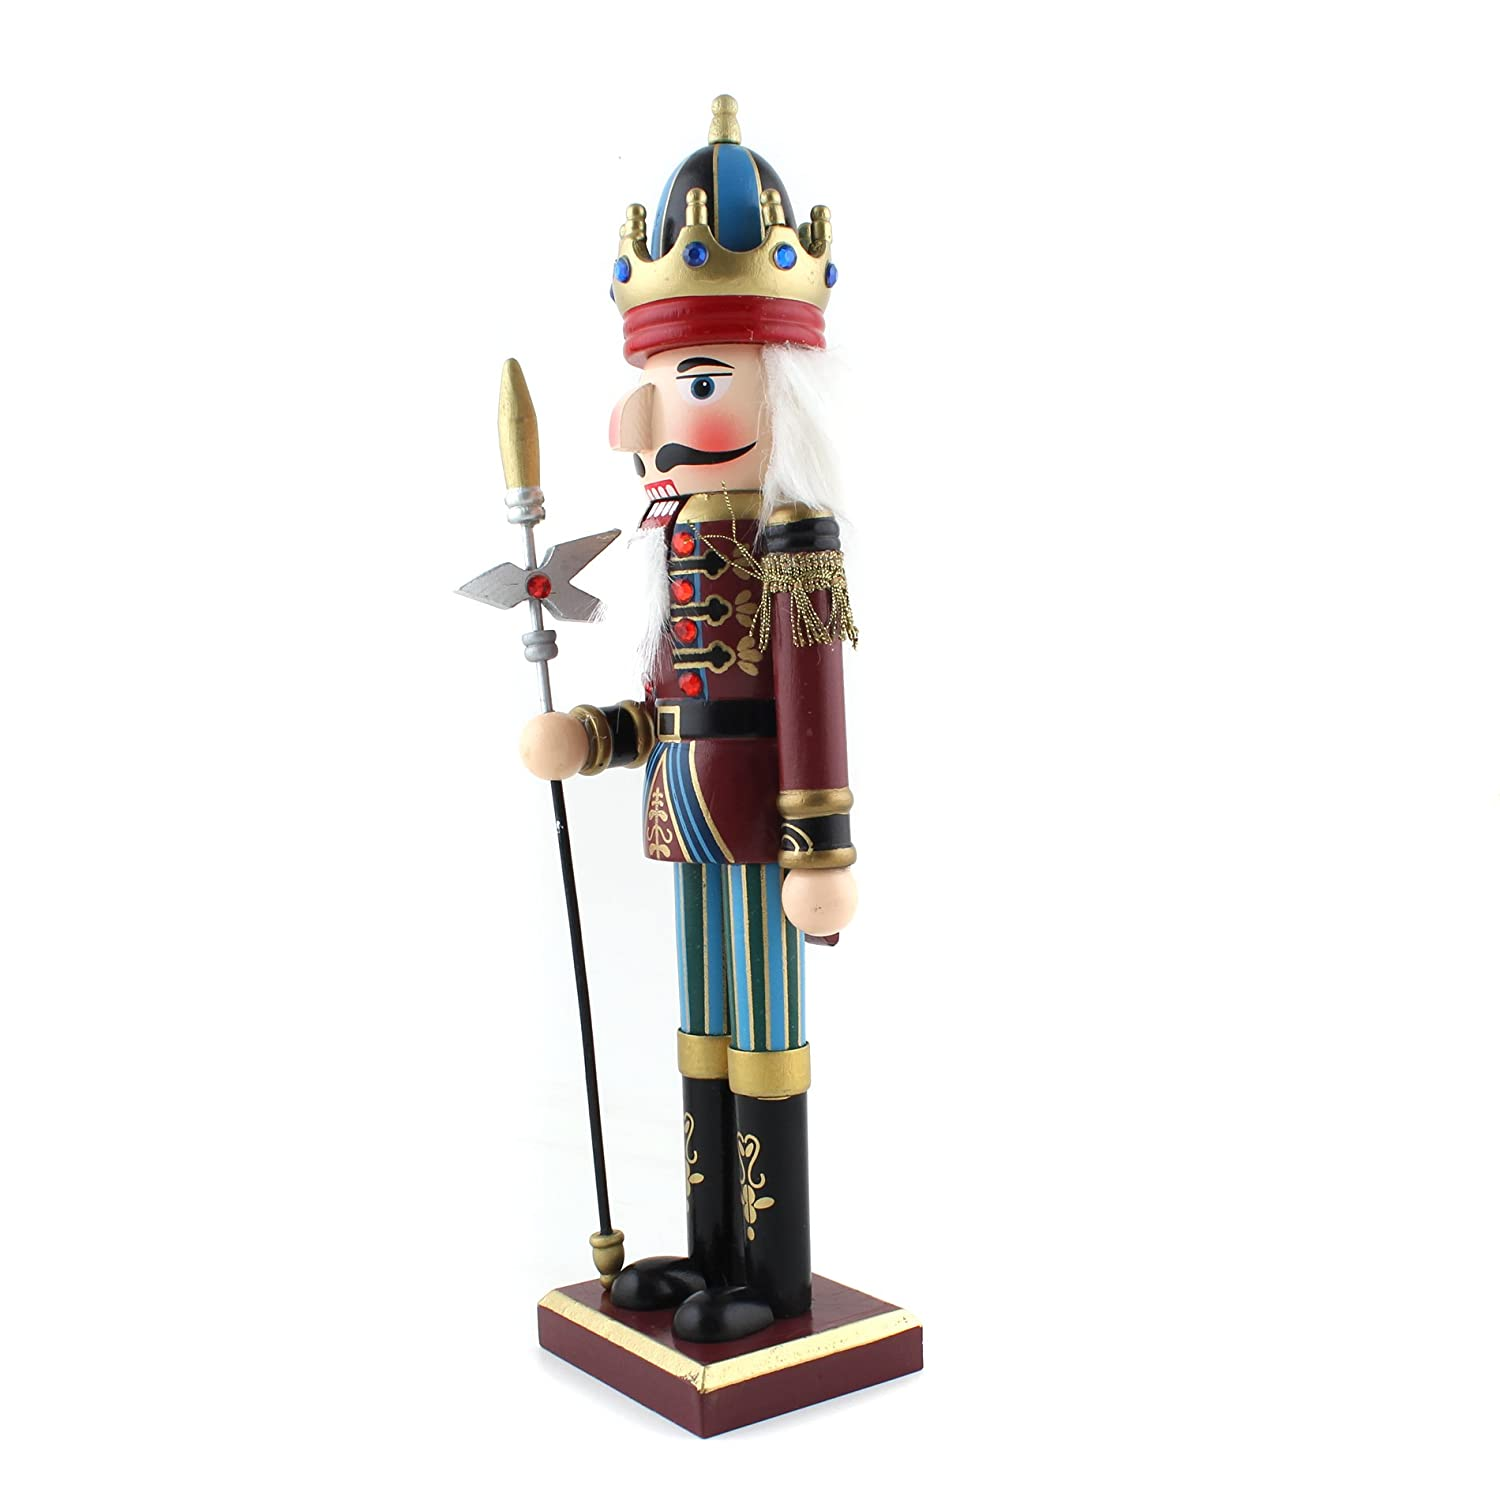 amazoncom 12 lance nutcracker wooden soldier toys ornaments holiday decoration gifts toys games - Large Toy Soldier Christmas Decoration